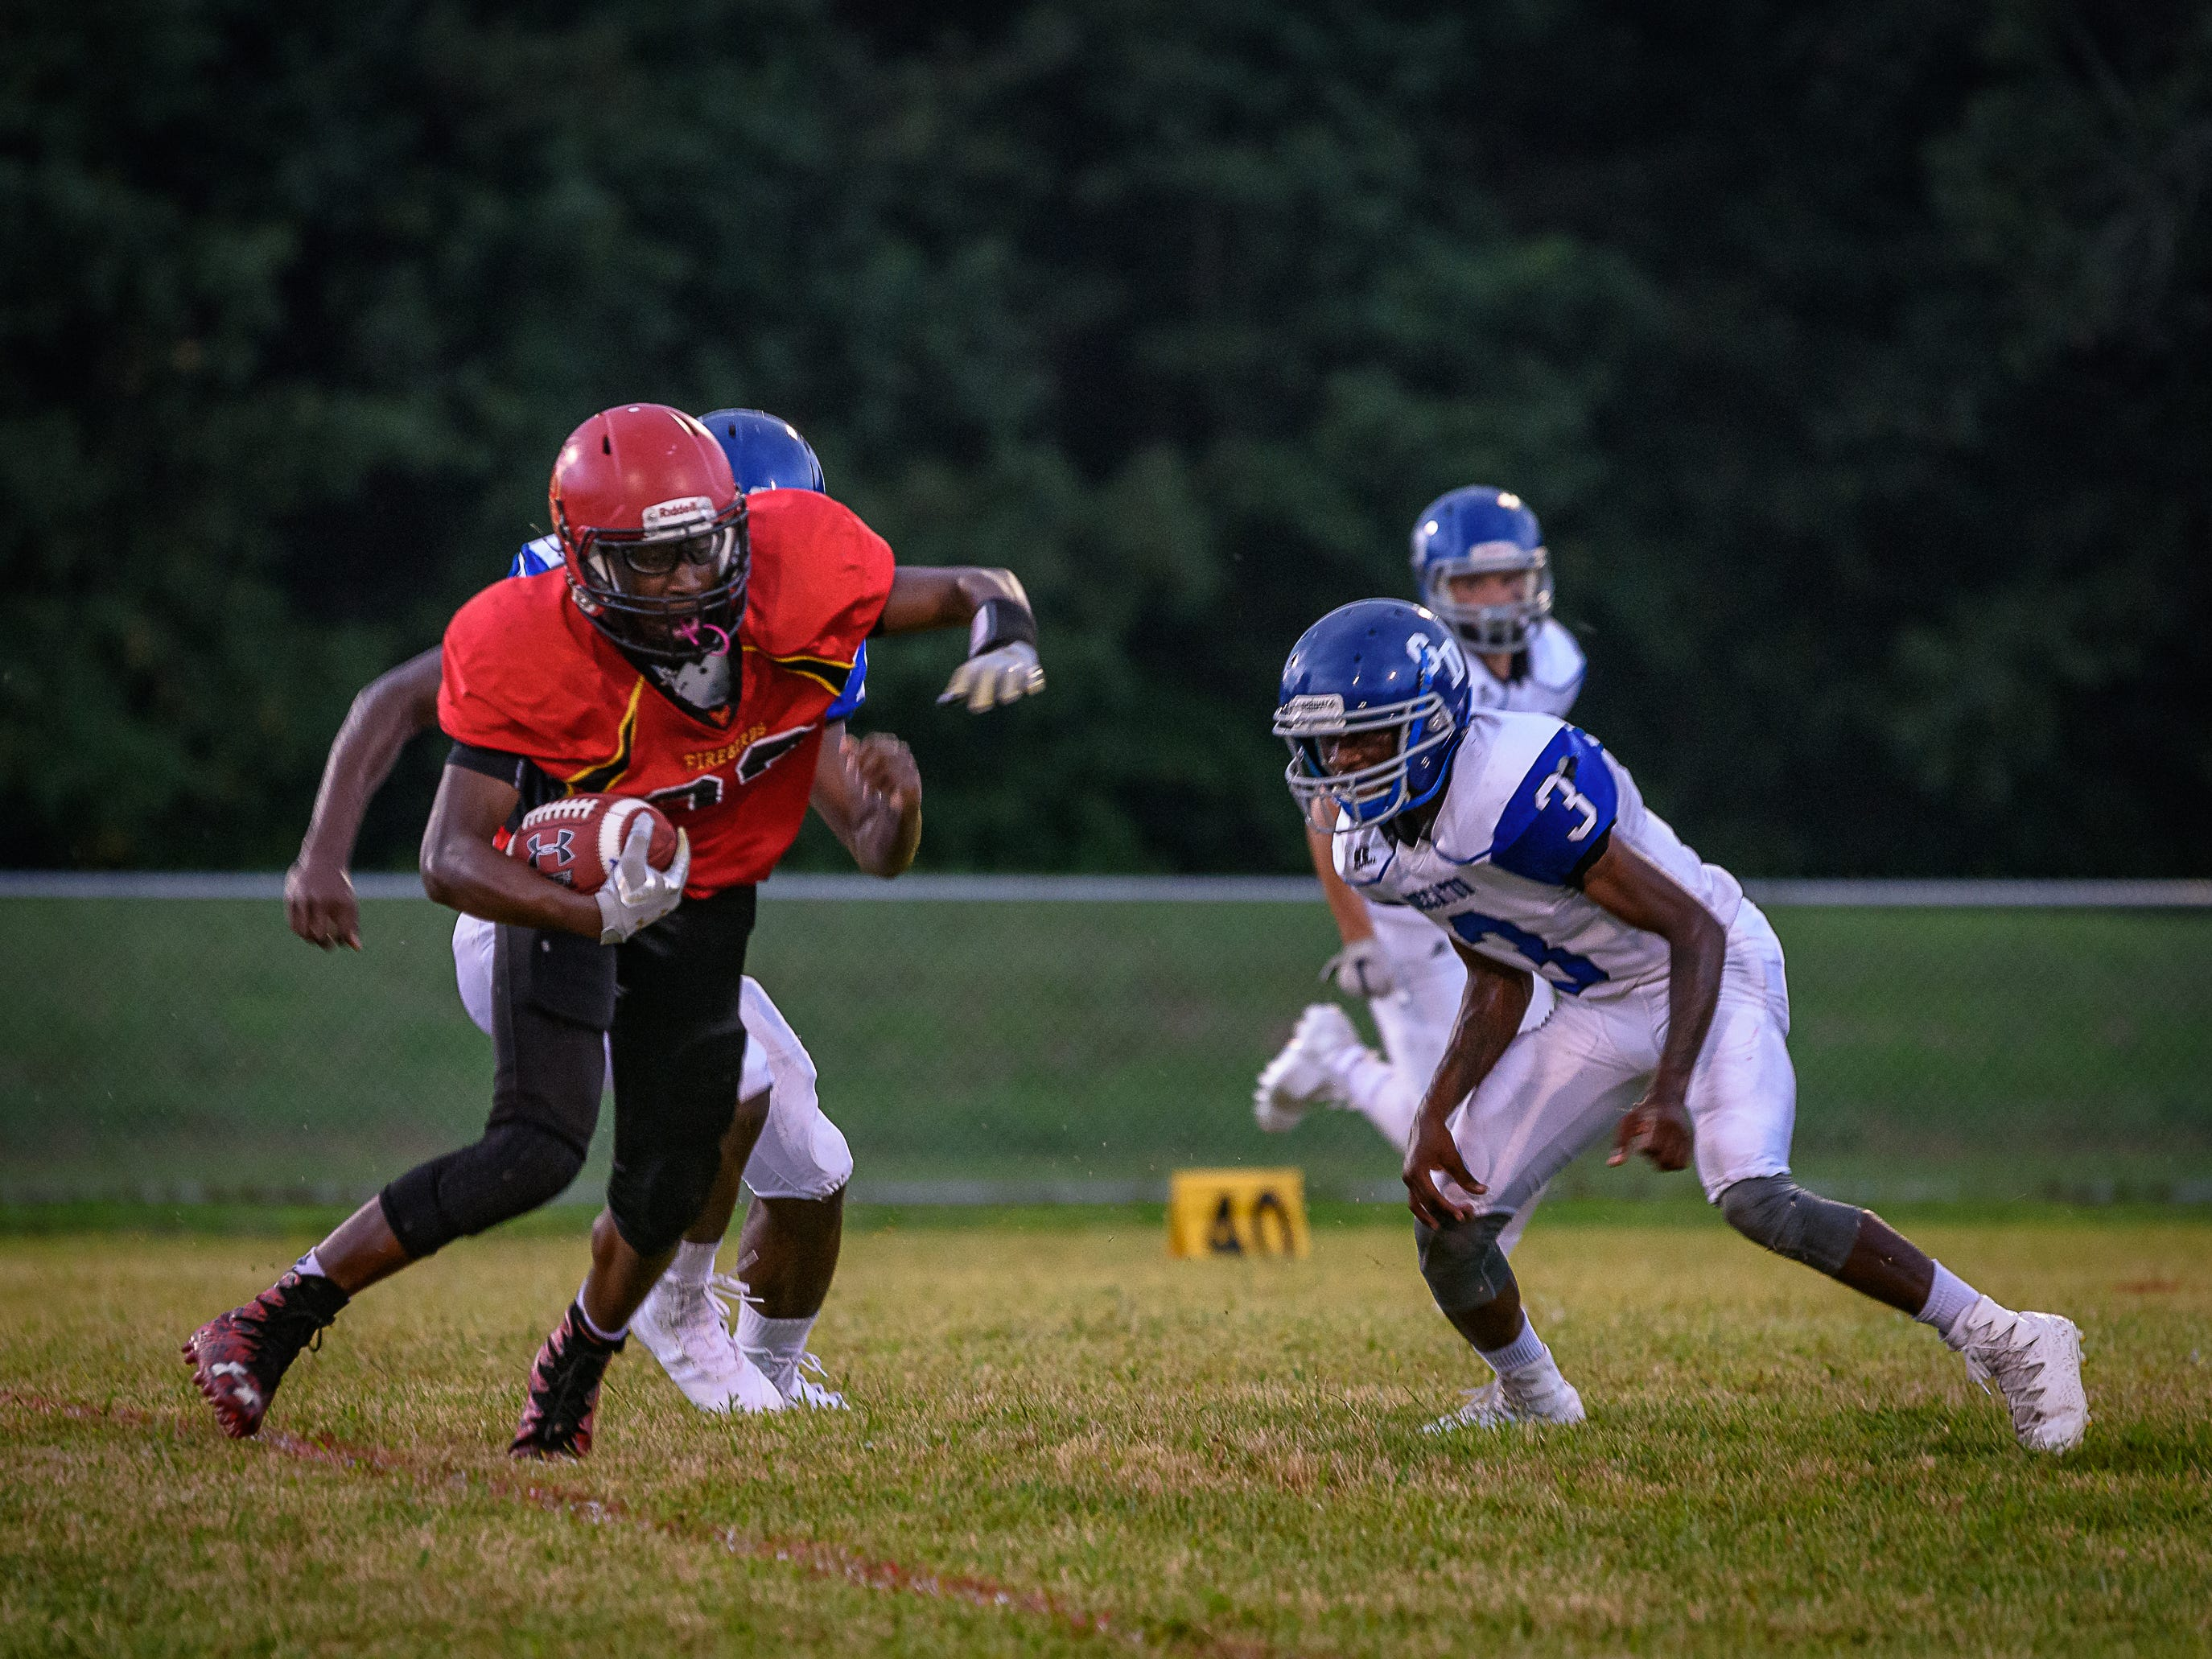 Arcadia's Jaden Hope tries to evade a tackle from Decatur's Shamar Briddell.